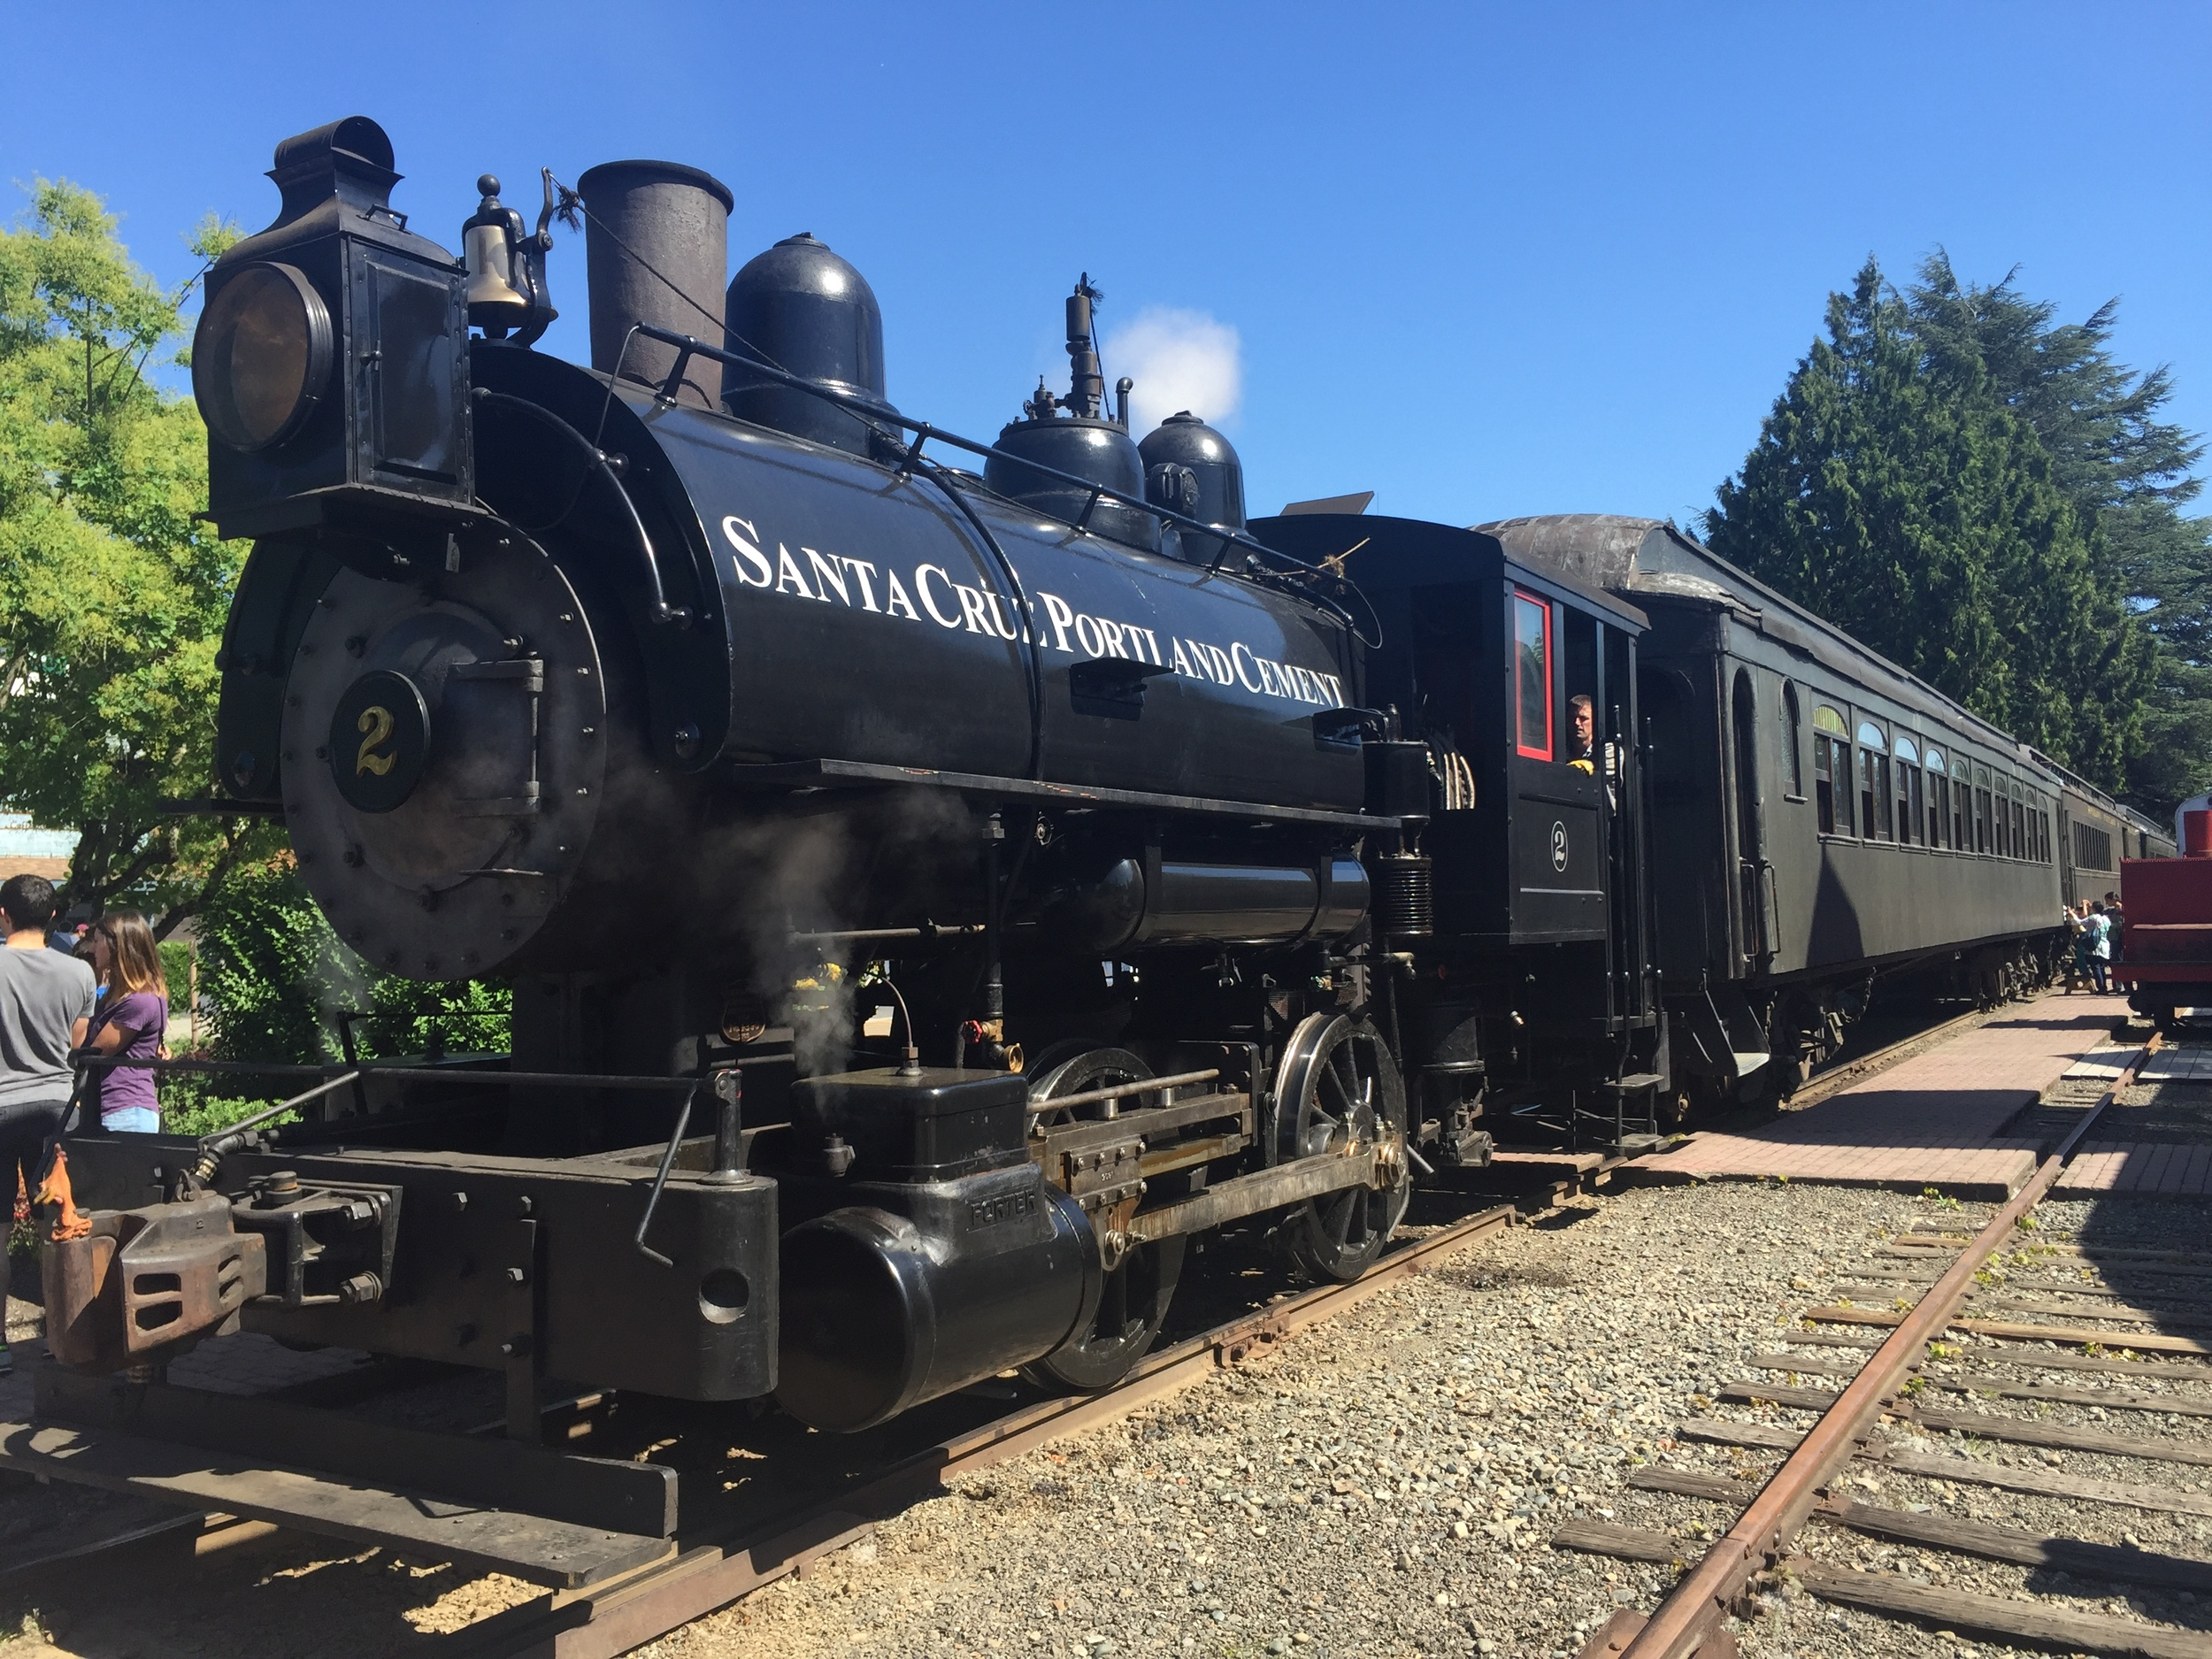 The real deal: a steam engine train